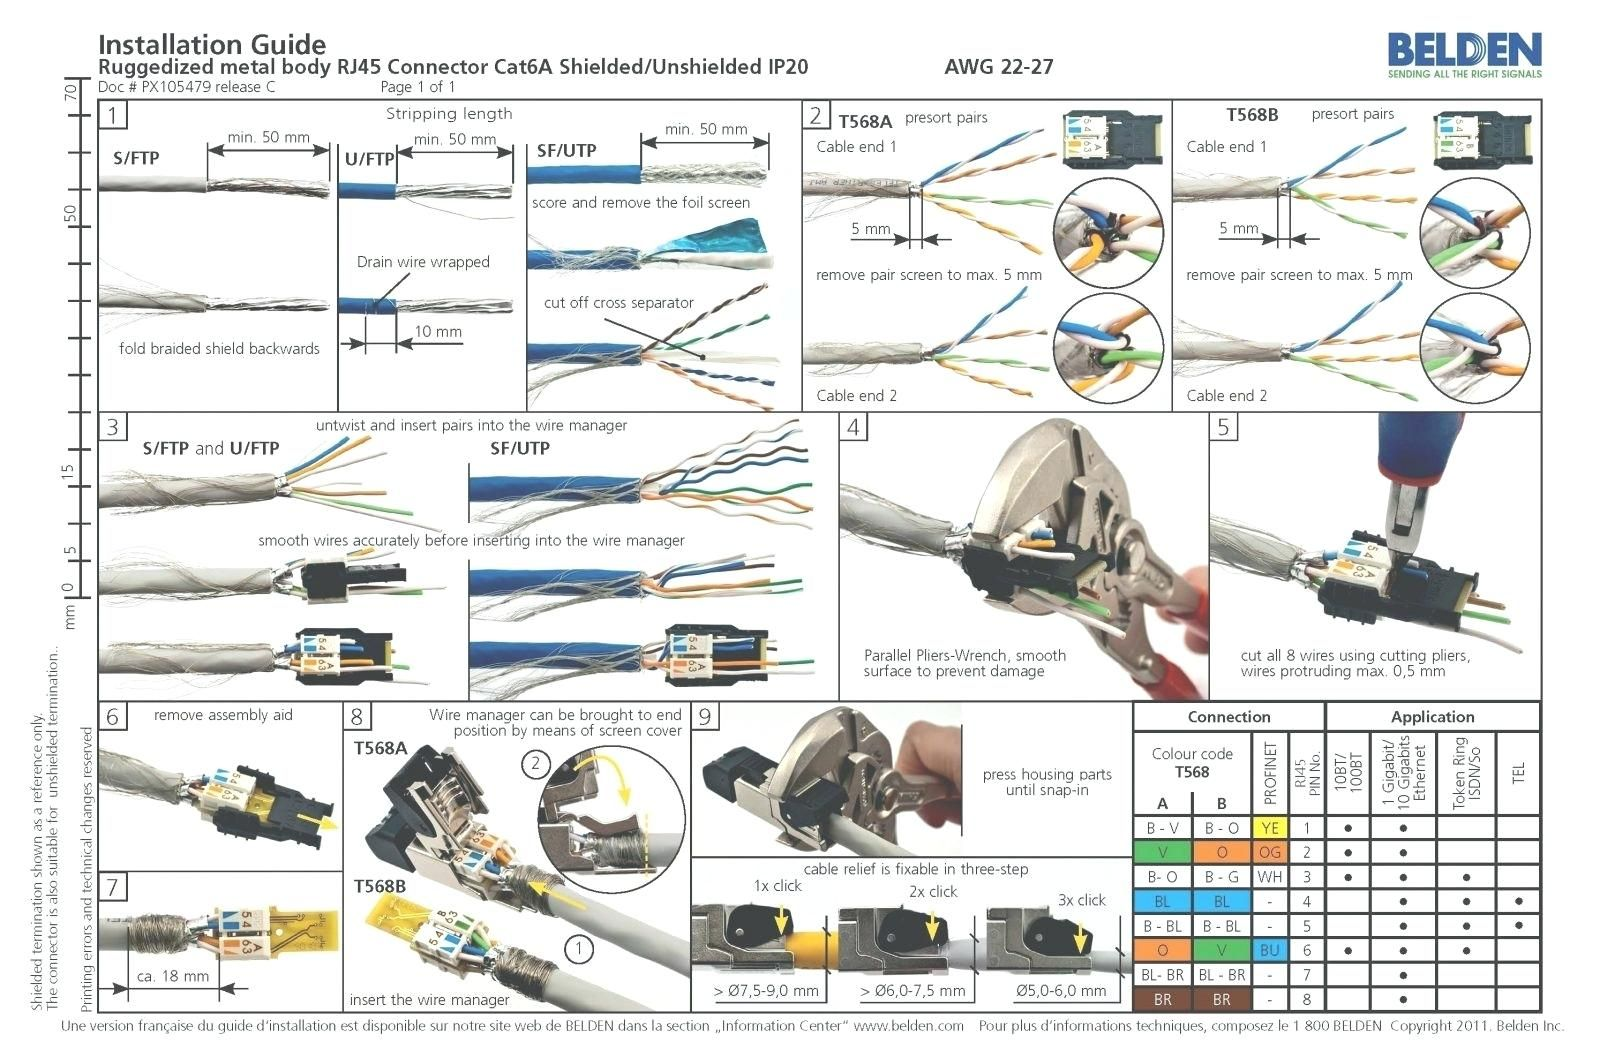 Rj11 Connector Wiring Diagram Wall Socket Australia Lovely